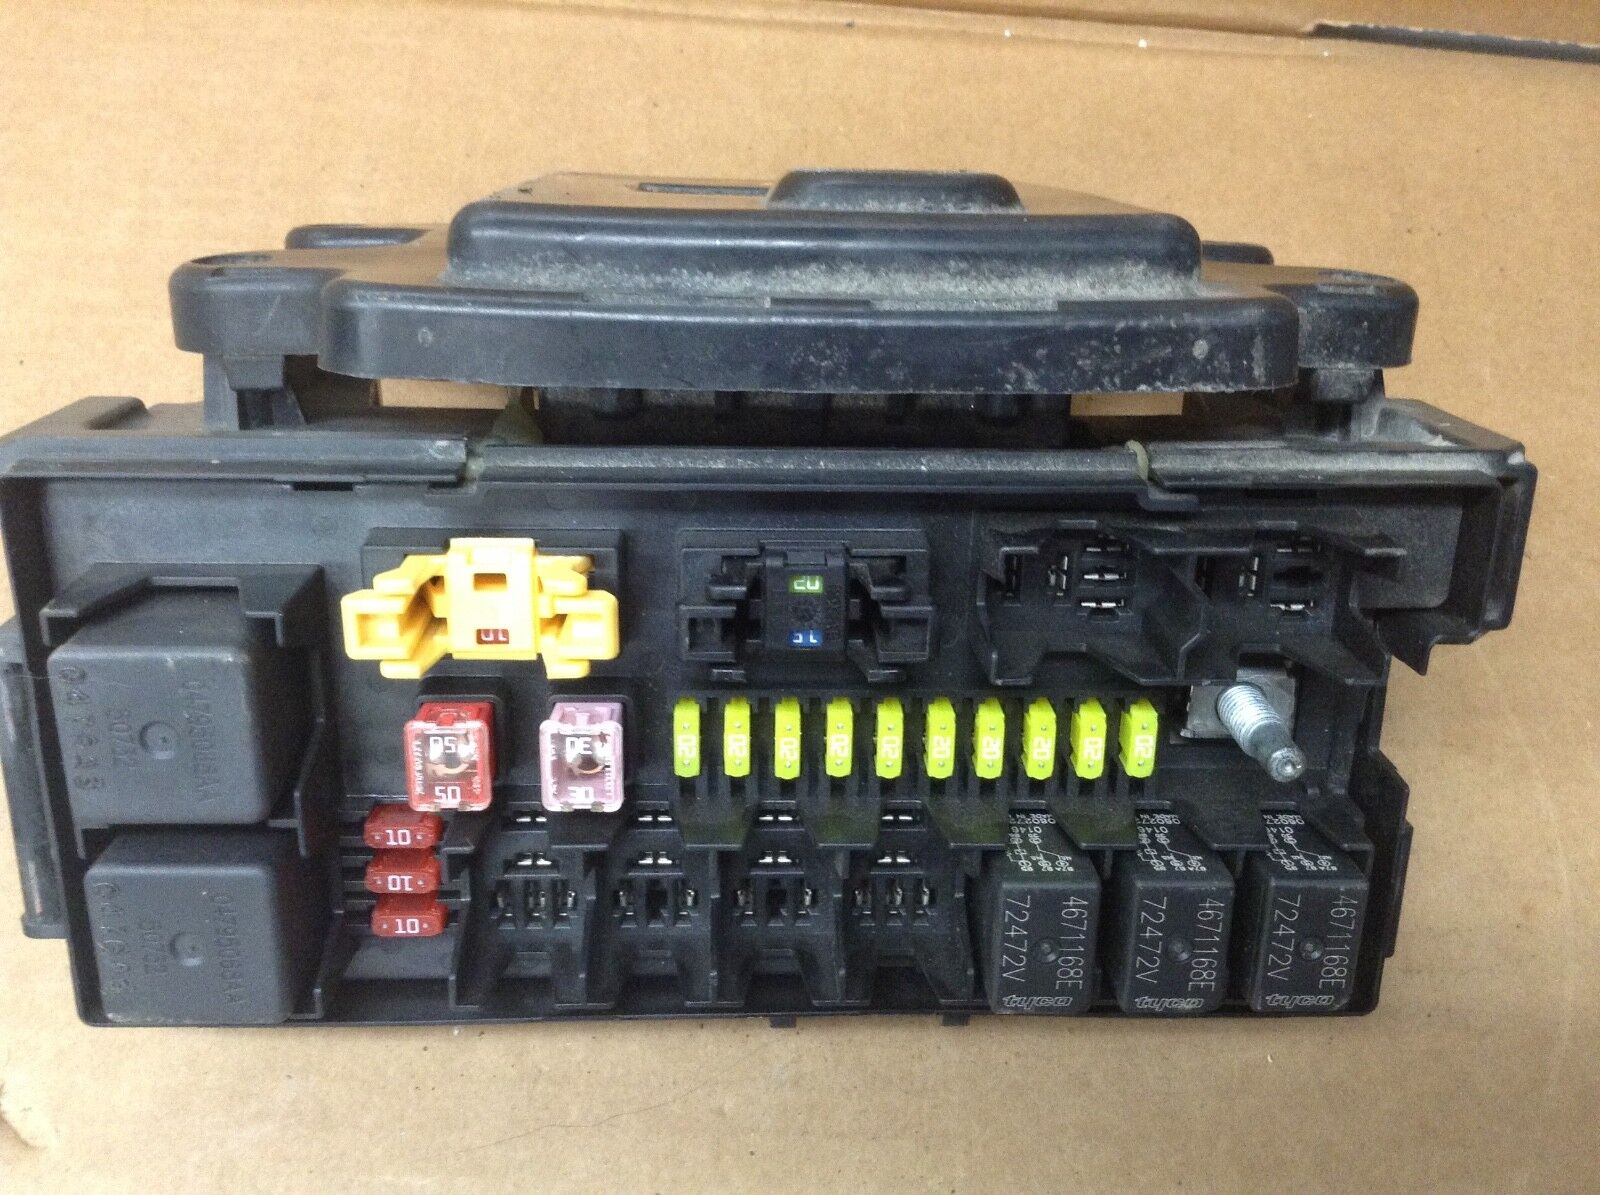 Used 2006 Jeep Grand Cherokee Computers Chips Cruise Control And Fuse Box Chassis Module 591 02574